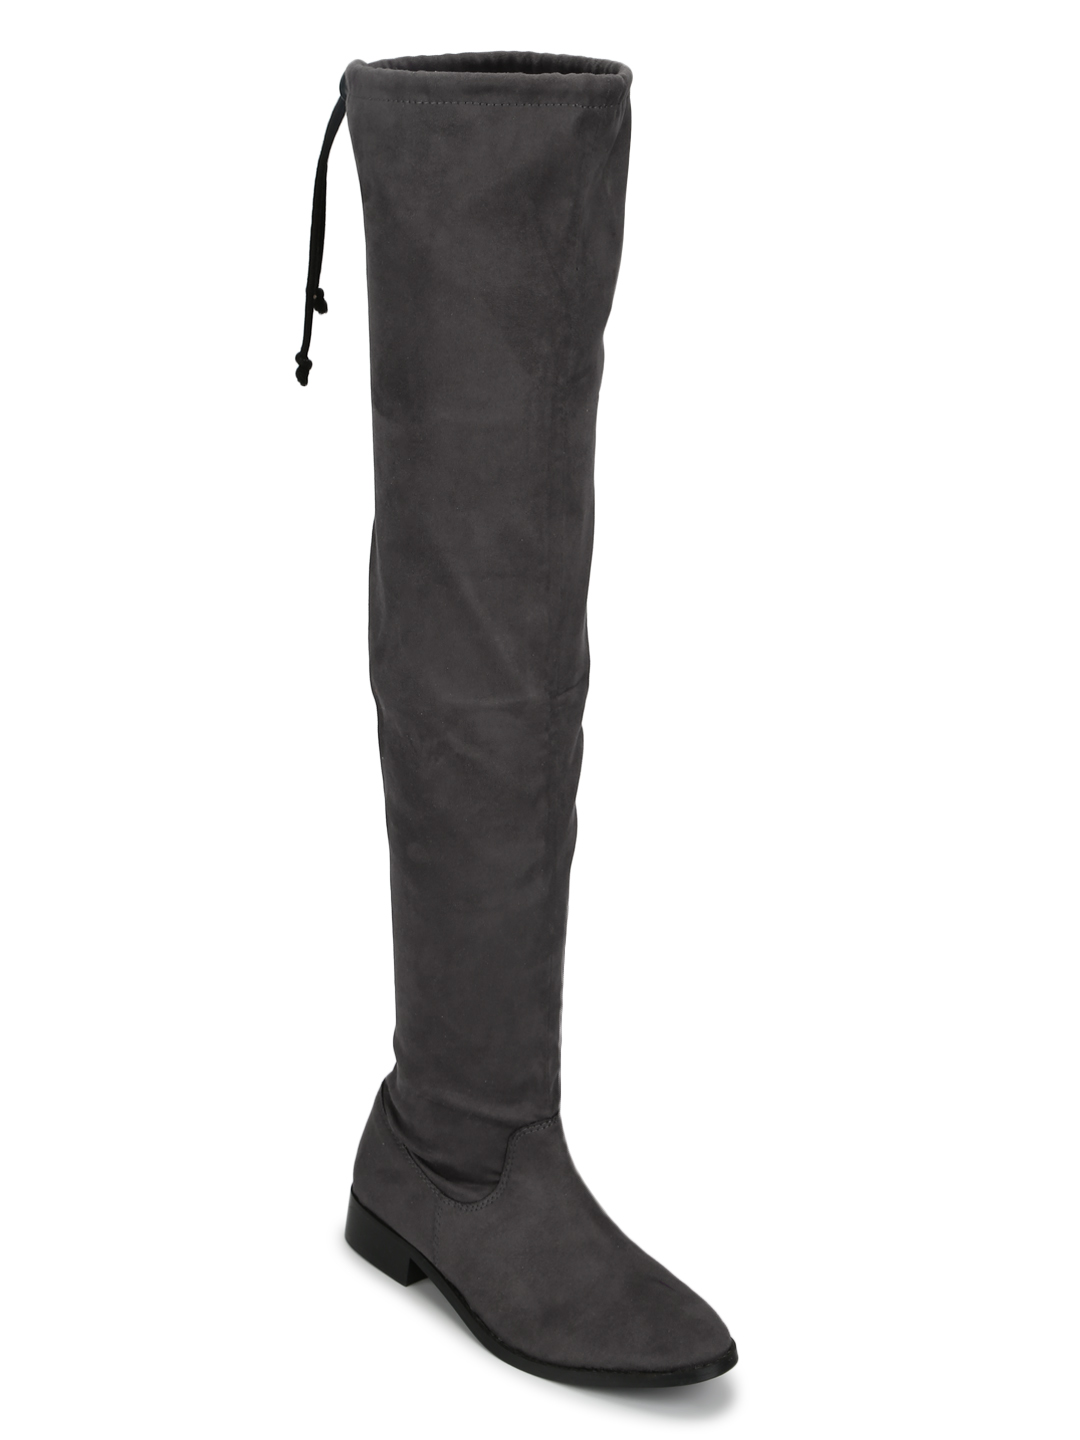 Truffle Collection | Truffle Collection Charcoal Suede Thigh High Boots